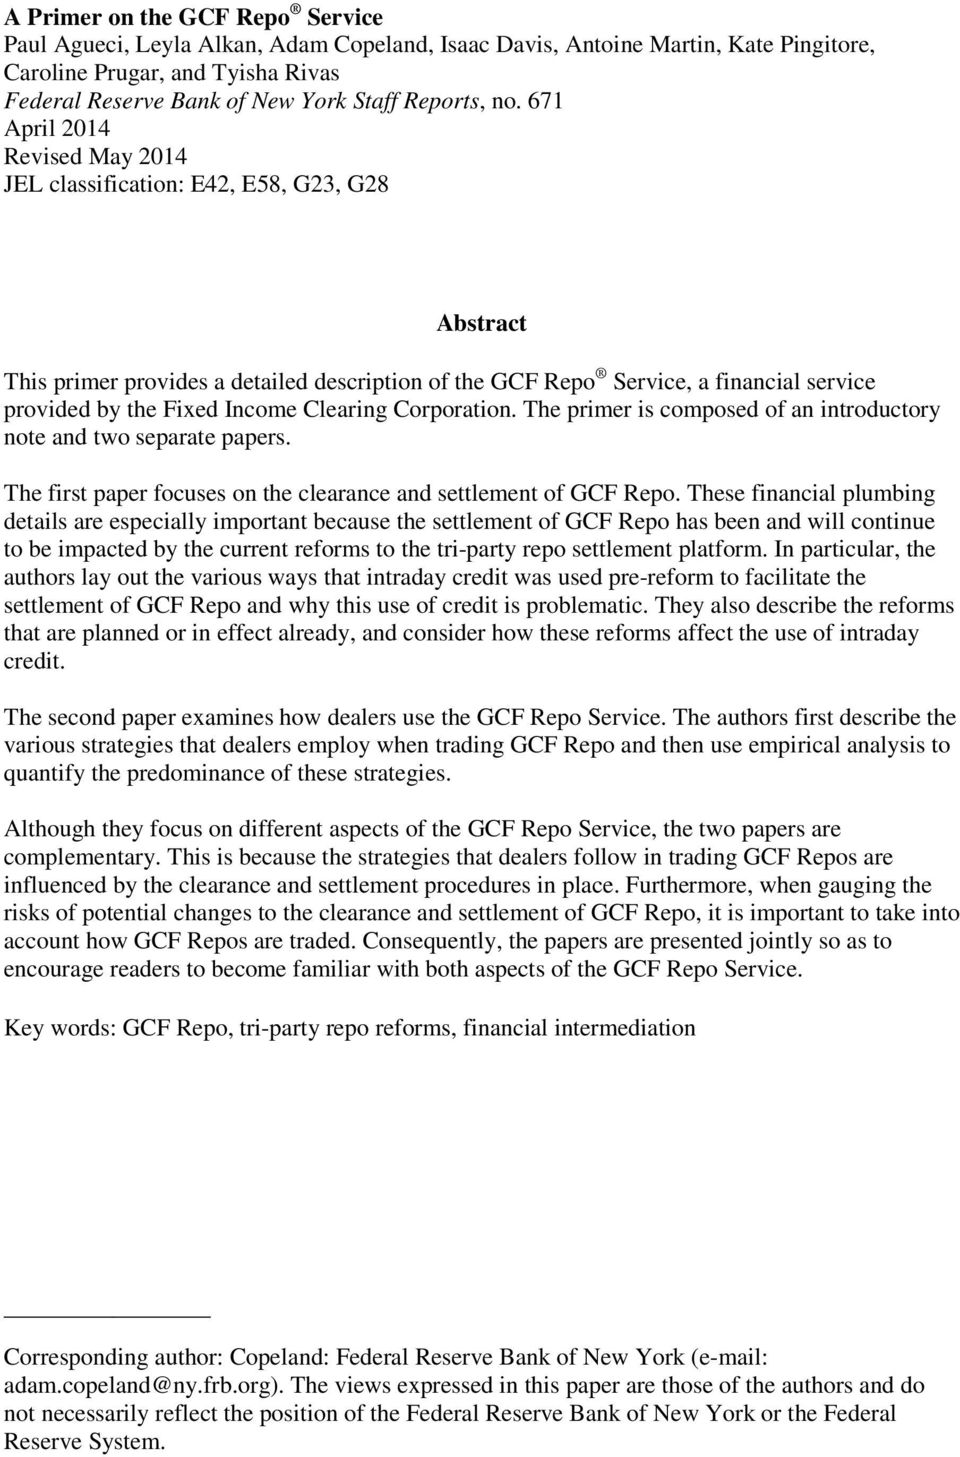 671 April 2014 Revised May 2014 JEL classification: E42, E58, G23, G28 Abstract This primer provides a detailed description of the GCF Repo Service, a financial service provided by the Fixed Income